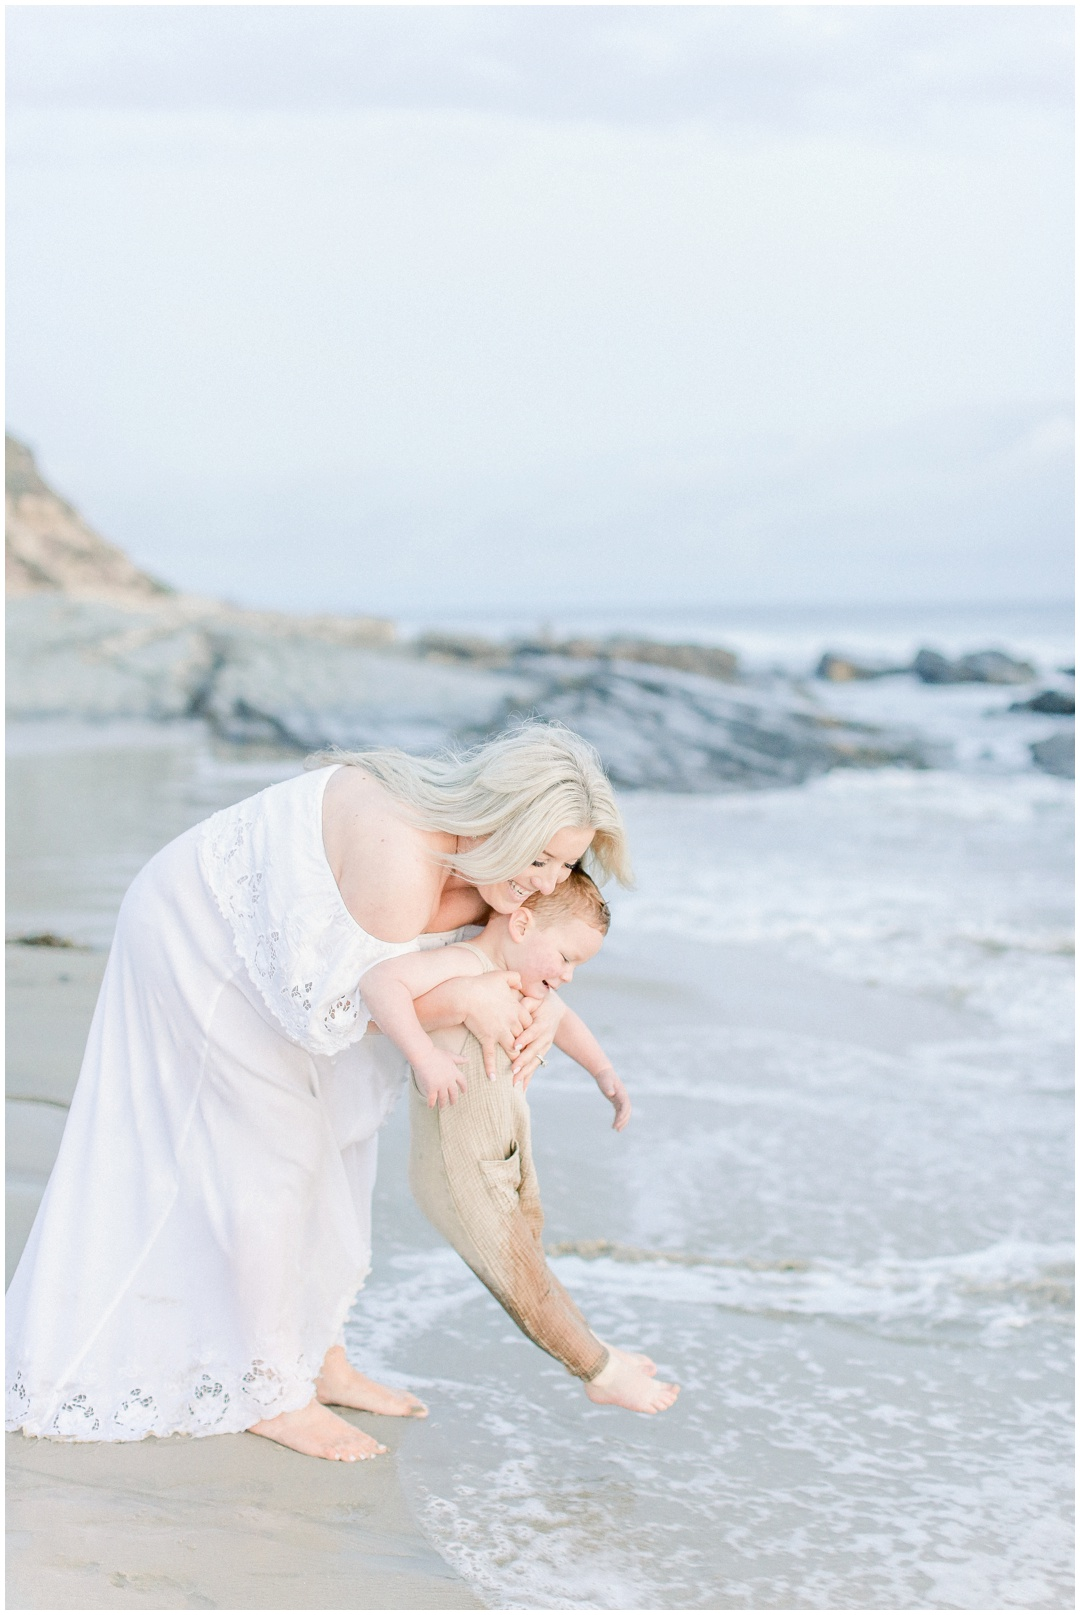 Newport_Beach_Newborn_Light_Airy_Natural_Photographer_Newport_Beach_Photographer_Orange_County_Family_Photographer_Cori_Kleckner_Photography_Newport_Beach_Photographer_Maternity_kole_calhoun56_kole_calhoun_Jennifer_Calhoun_Knox_Calhoun_3709.jpg